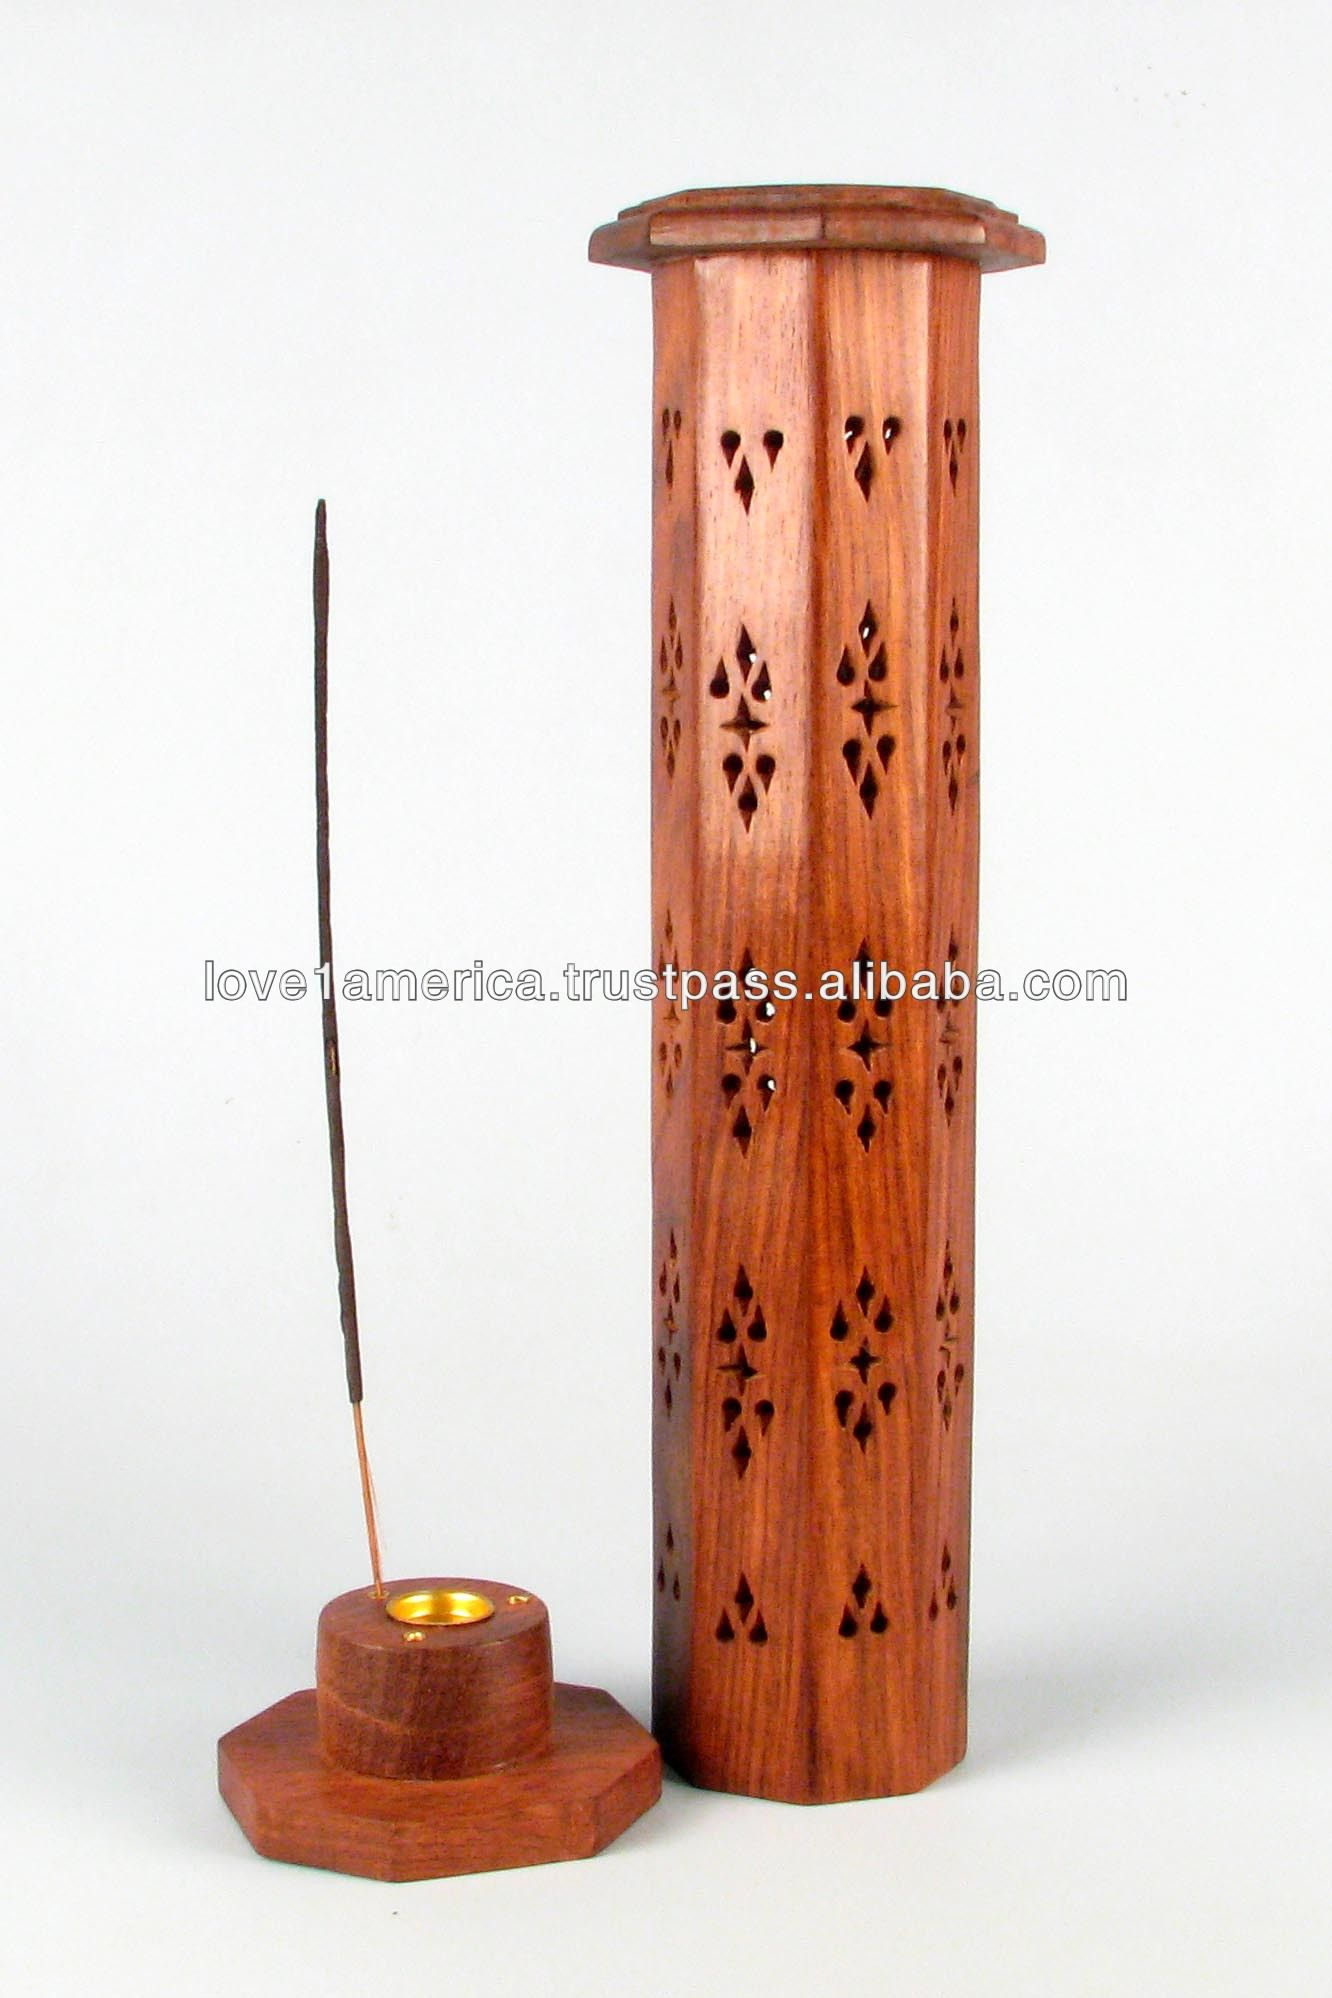 Wooden Incense Diffuser Find Complete Details About Wooden Incense Diffuser Wooden Incense Box Wooden Incense Tower Incense Sticks Ho Porta Sahumerios Incienso Y Cajas